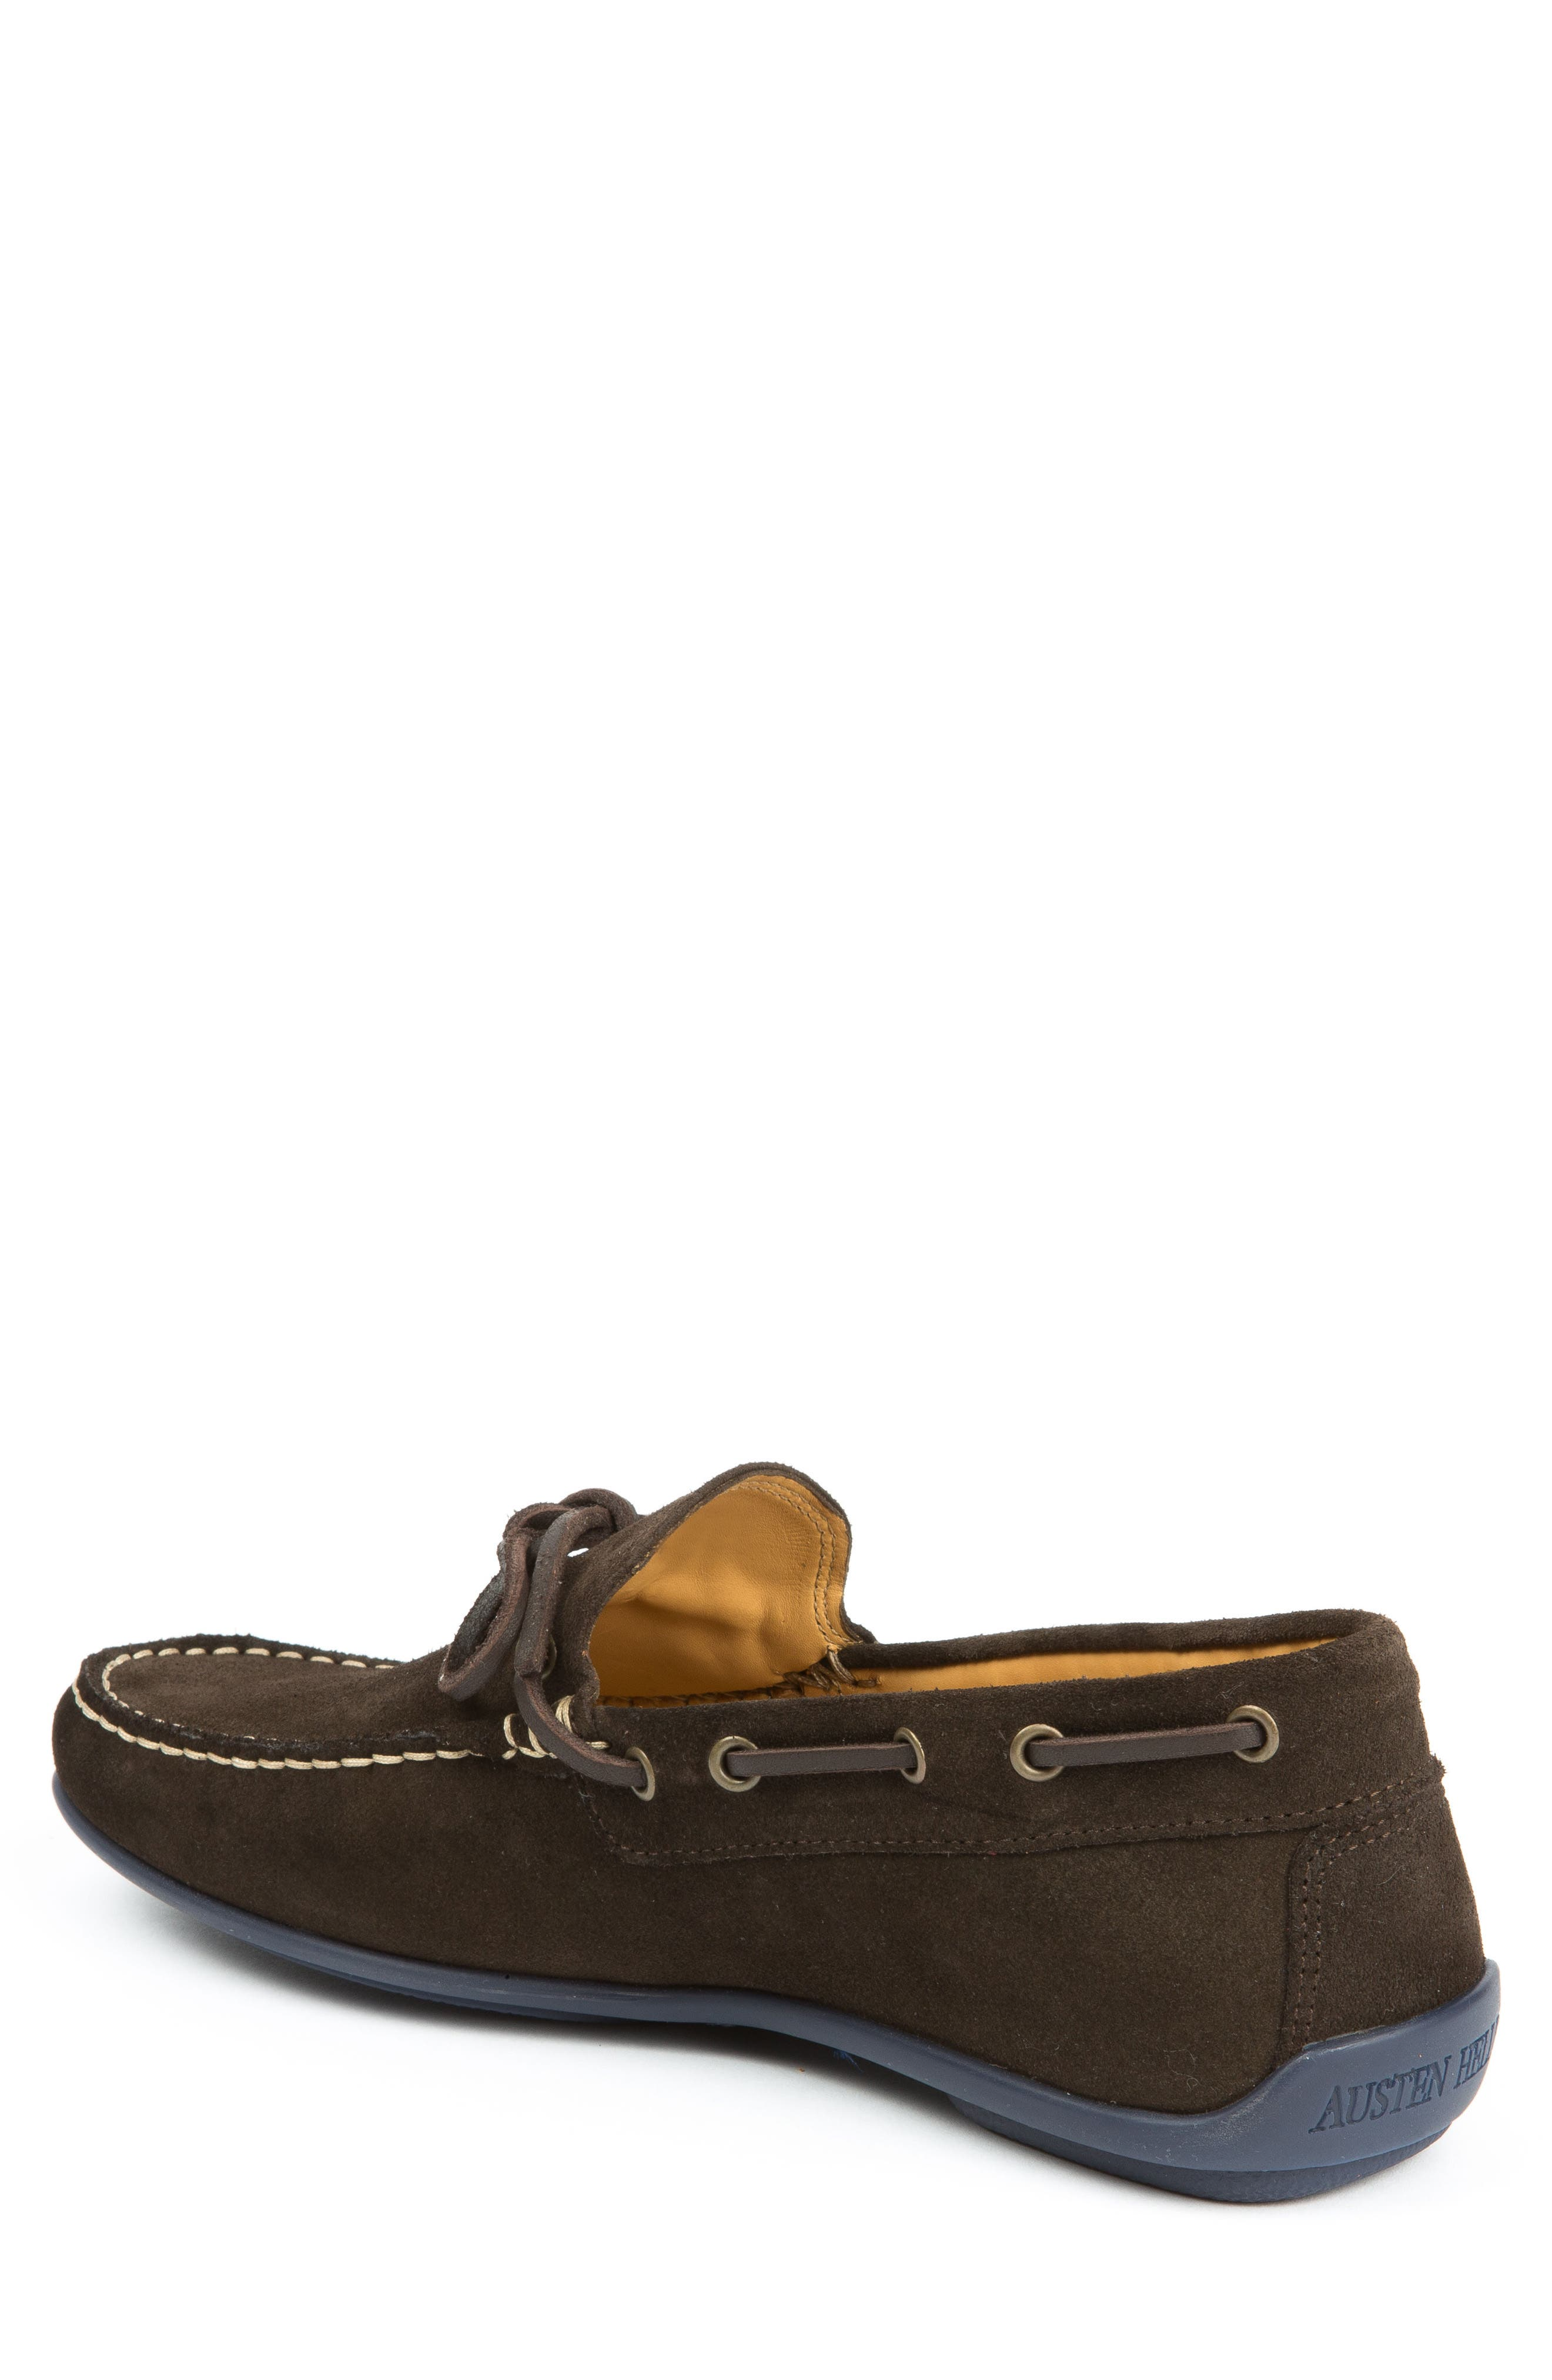 Kingstons Driving Shoe,                             Alternate thumbnail 2, color,                             Brown Suede